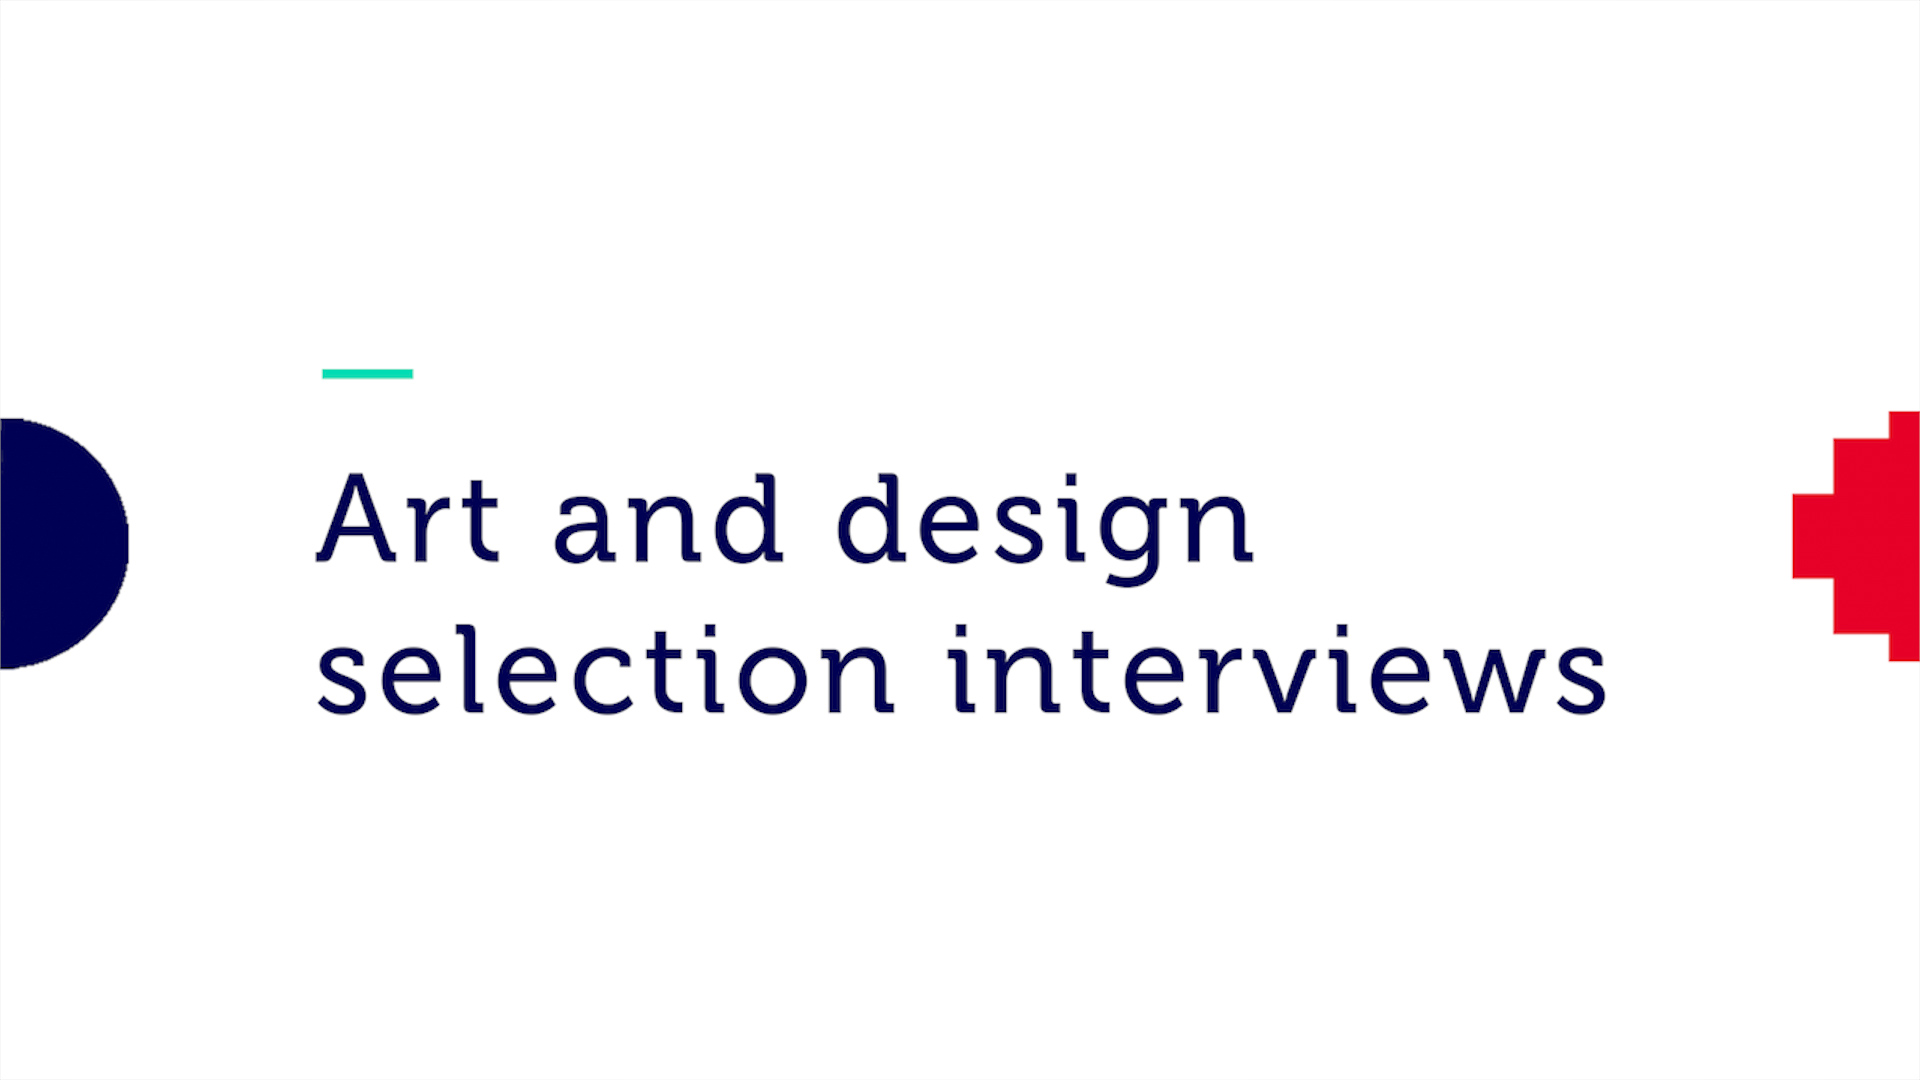 Art and design selection interviews